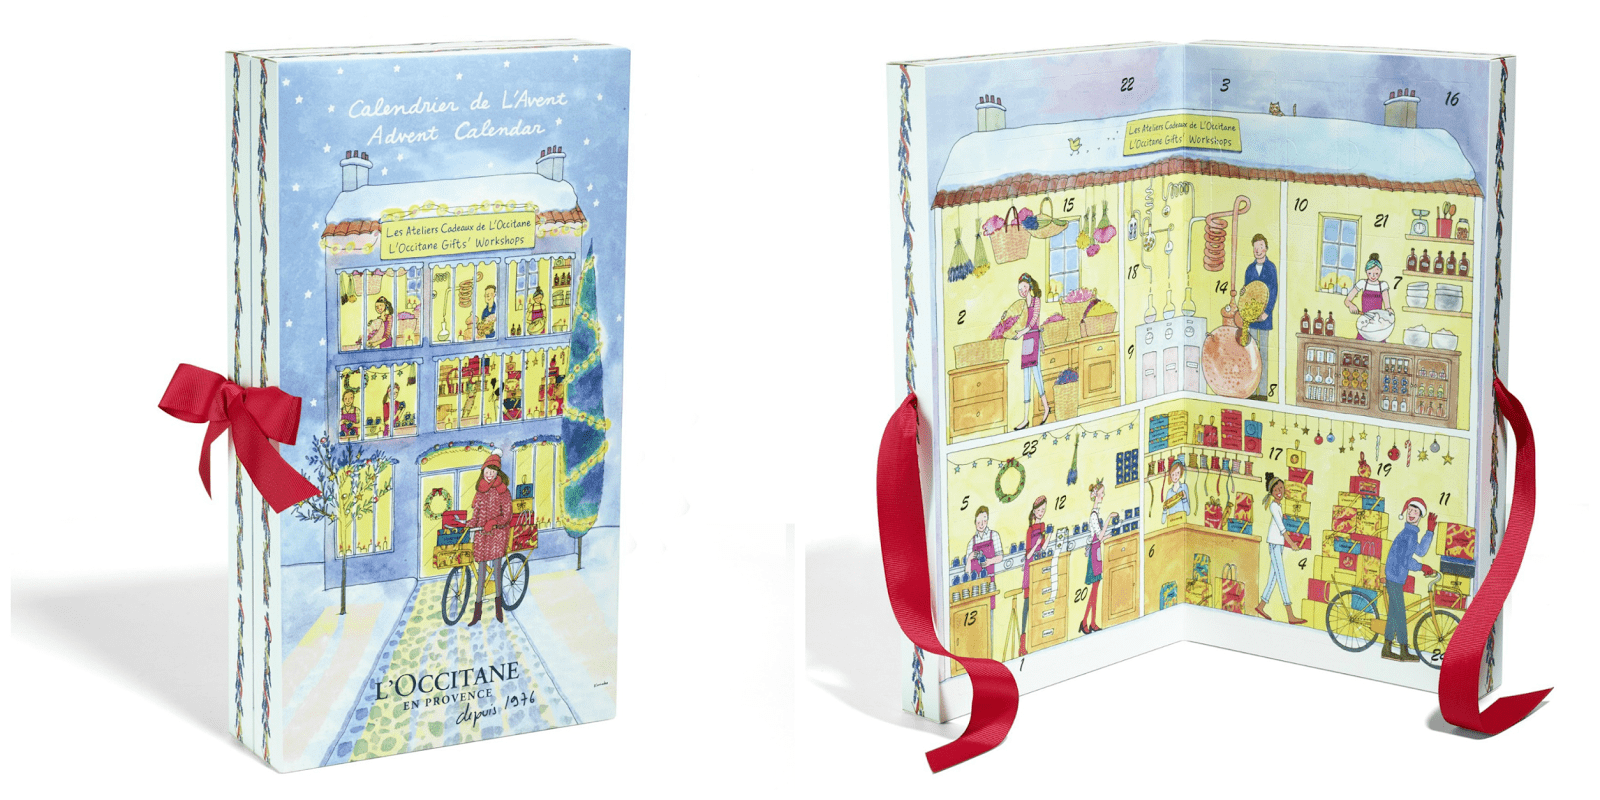 l'occitane adventskalender 2016